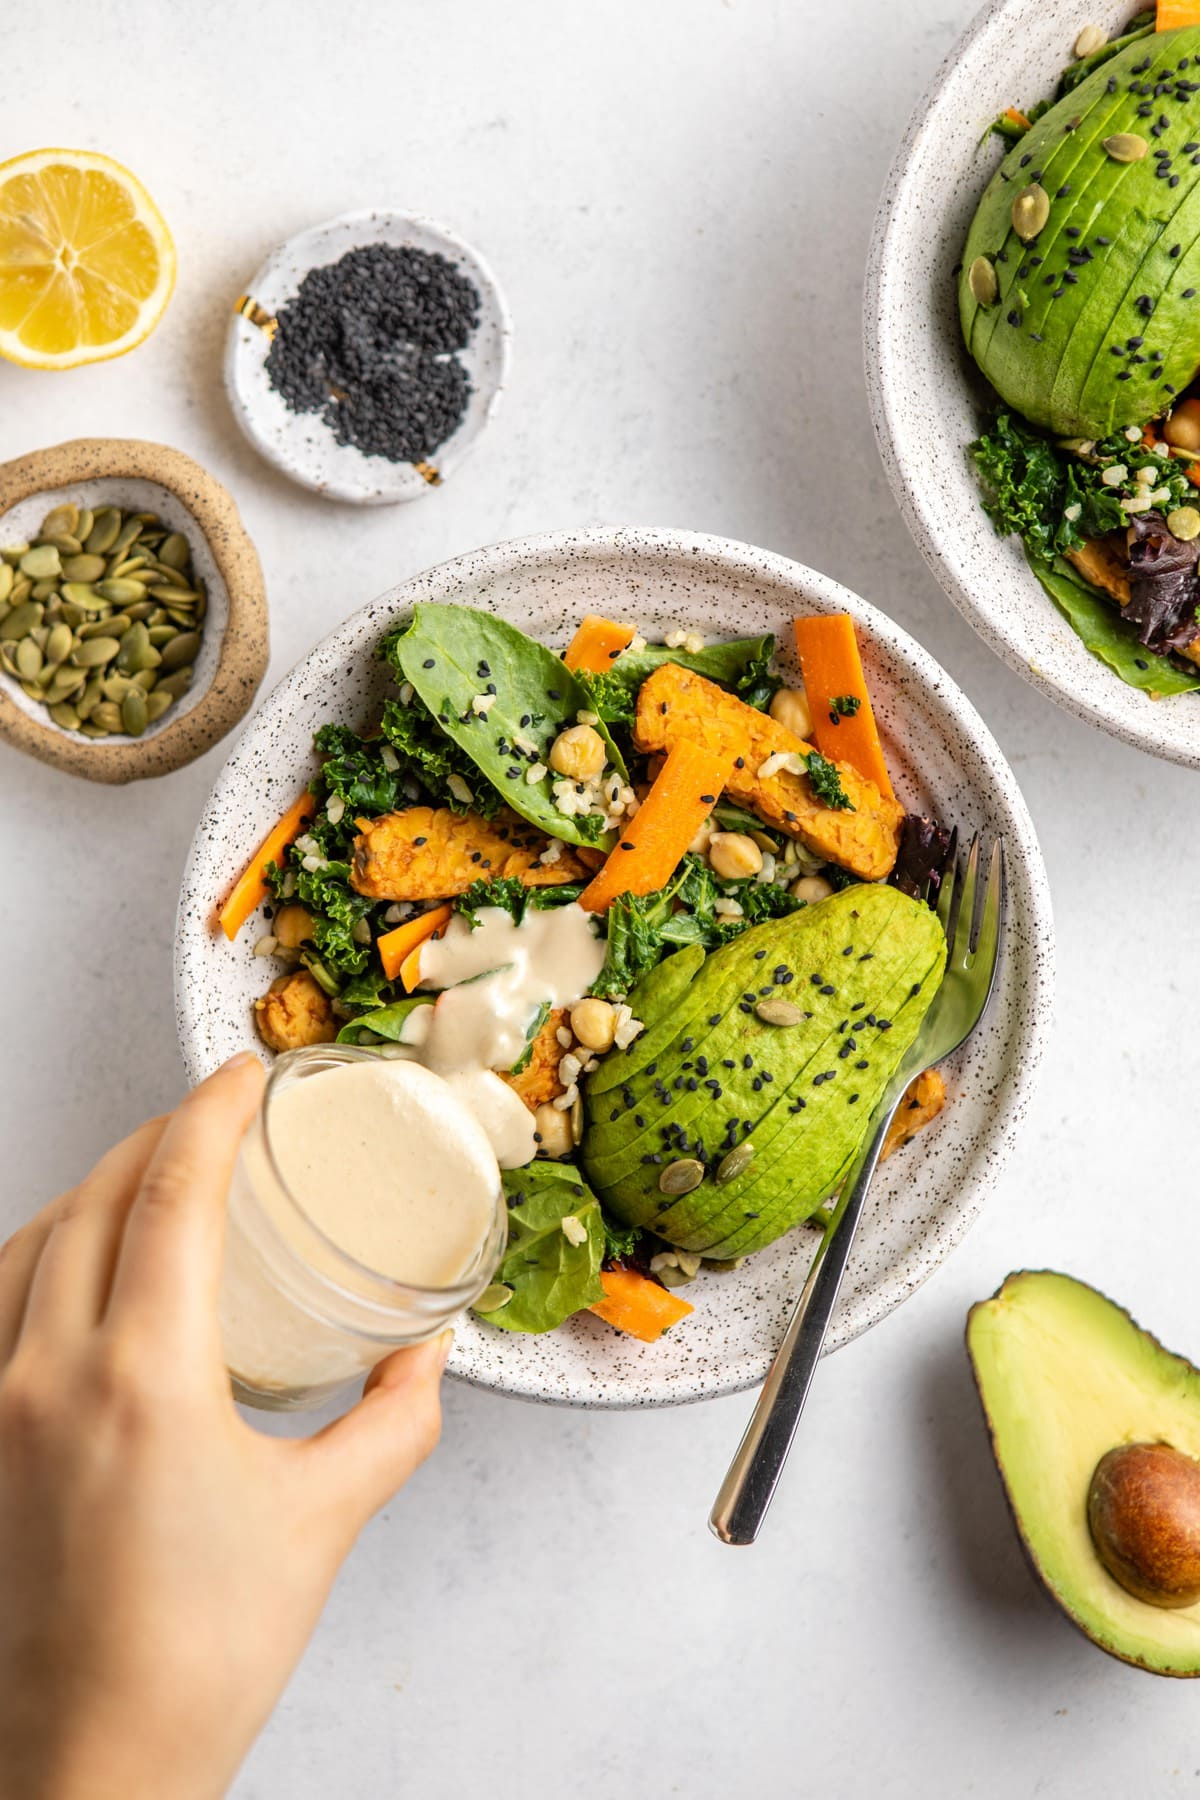 hand pouring creamy miso dress into harvest salad with avocado on the side